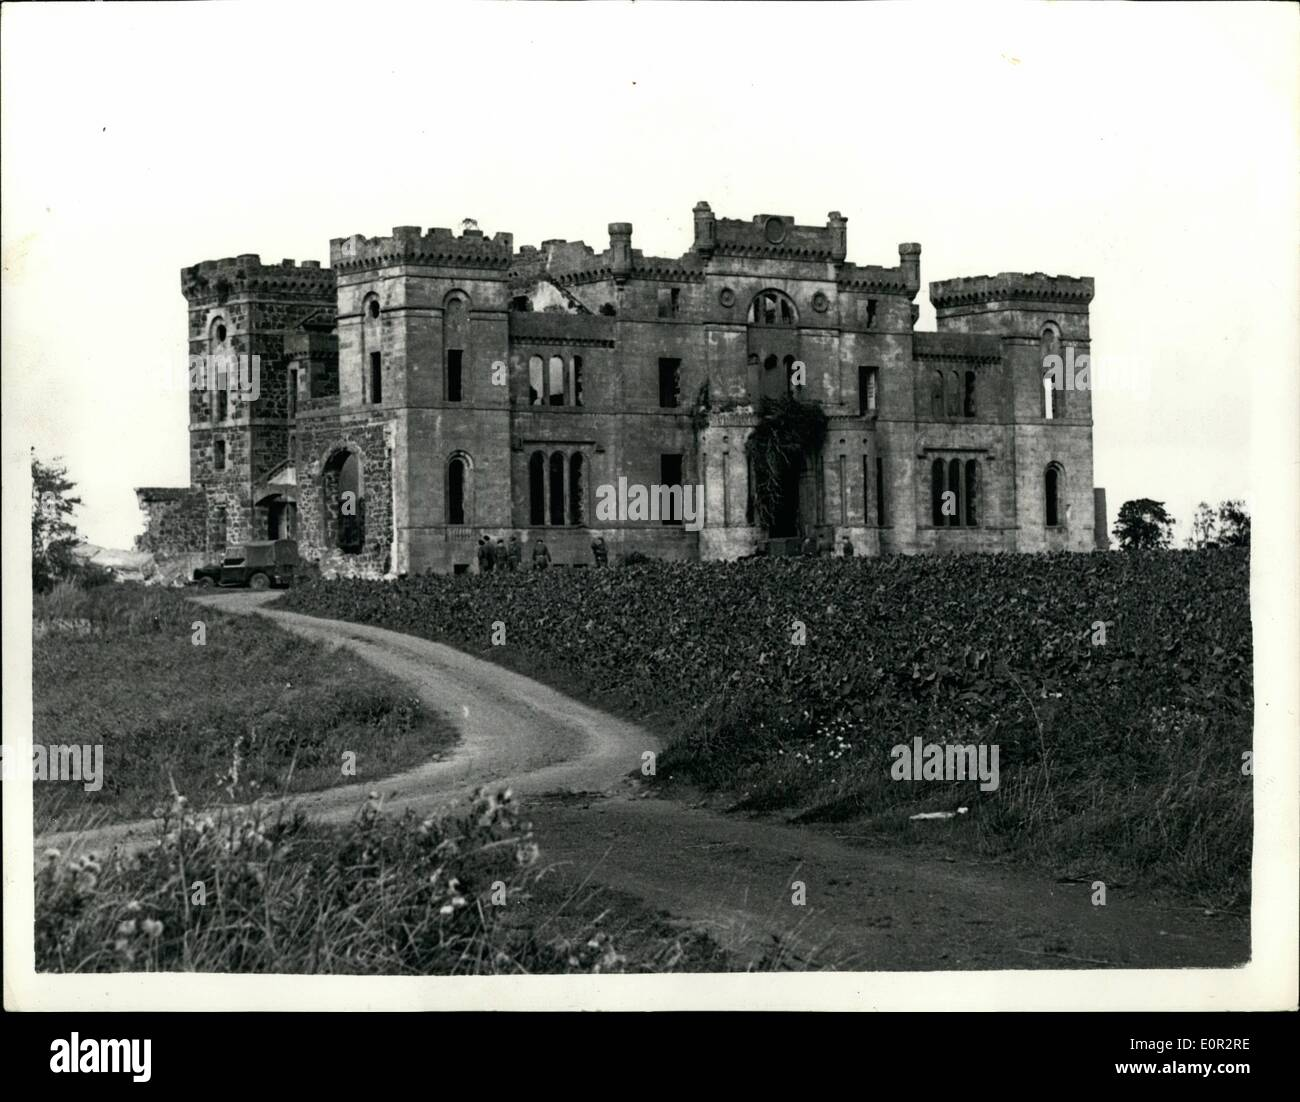 Oct. 10, 1957 - Ancient castle goes up in smoke. Blown up by 500 LBS. of explosives: The 150 year old Rossie Castle, near Montross was recently demolished by Army Engineers - with the aid of 500 lb. of plastic explosive. Within 30 seconds the castle - which was sold to a professional footballer 20 years ago for £1 - was reduced to 20,000 tons of rubble which will be used by the local council for road widening scheme.. For weeks 80 officers and men of 117 Field Engineering Regiment had been boring holes in the 3ft. 6in. thick walls - Stock Image